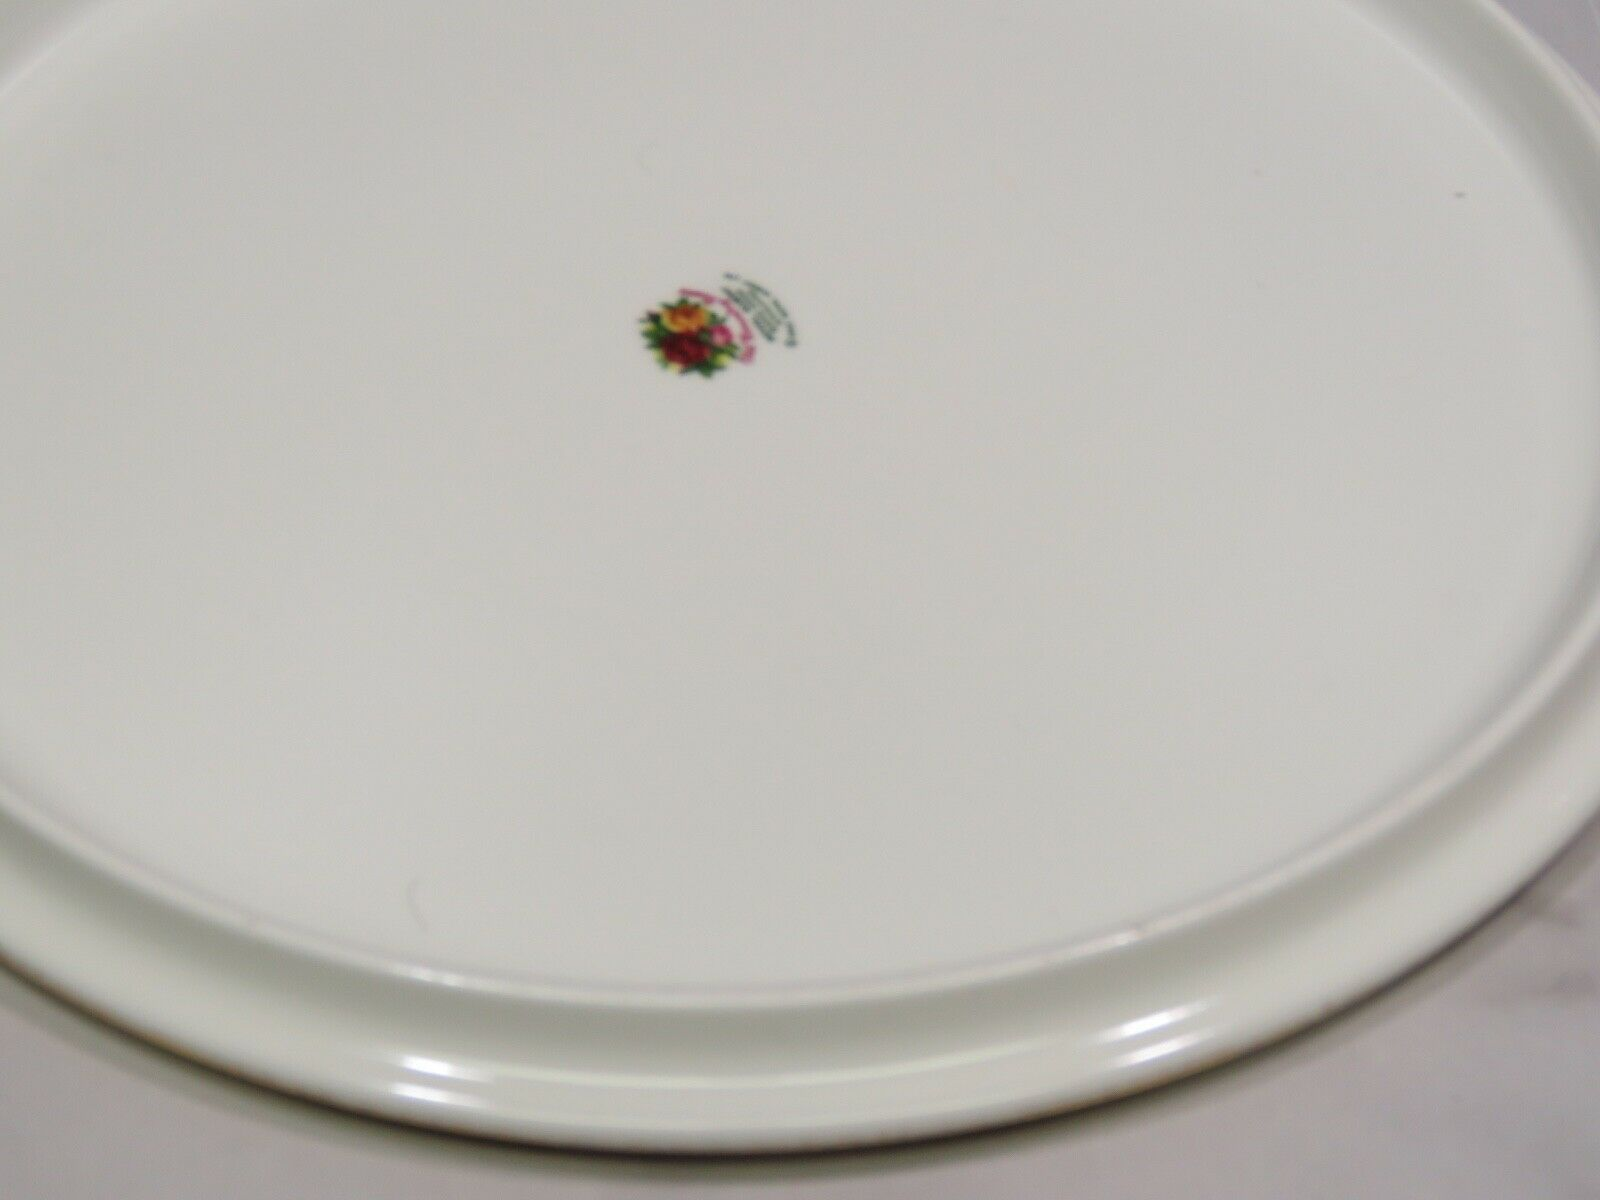 "Royal Albert Old Country Roses 11"" Round Cake Gateaux Platter Plate New in Box"